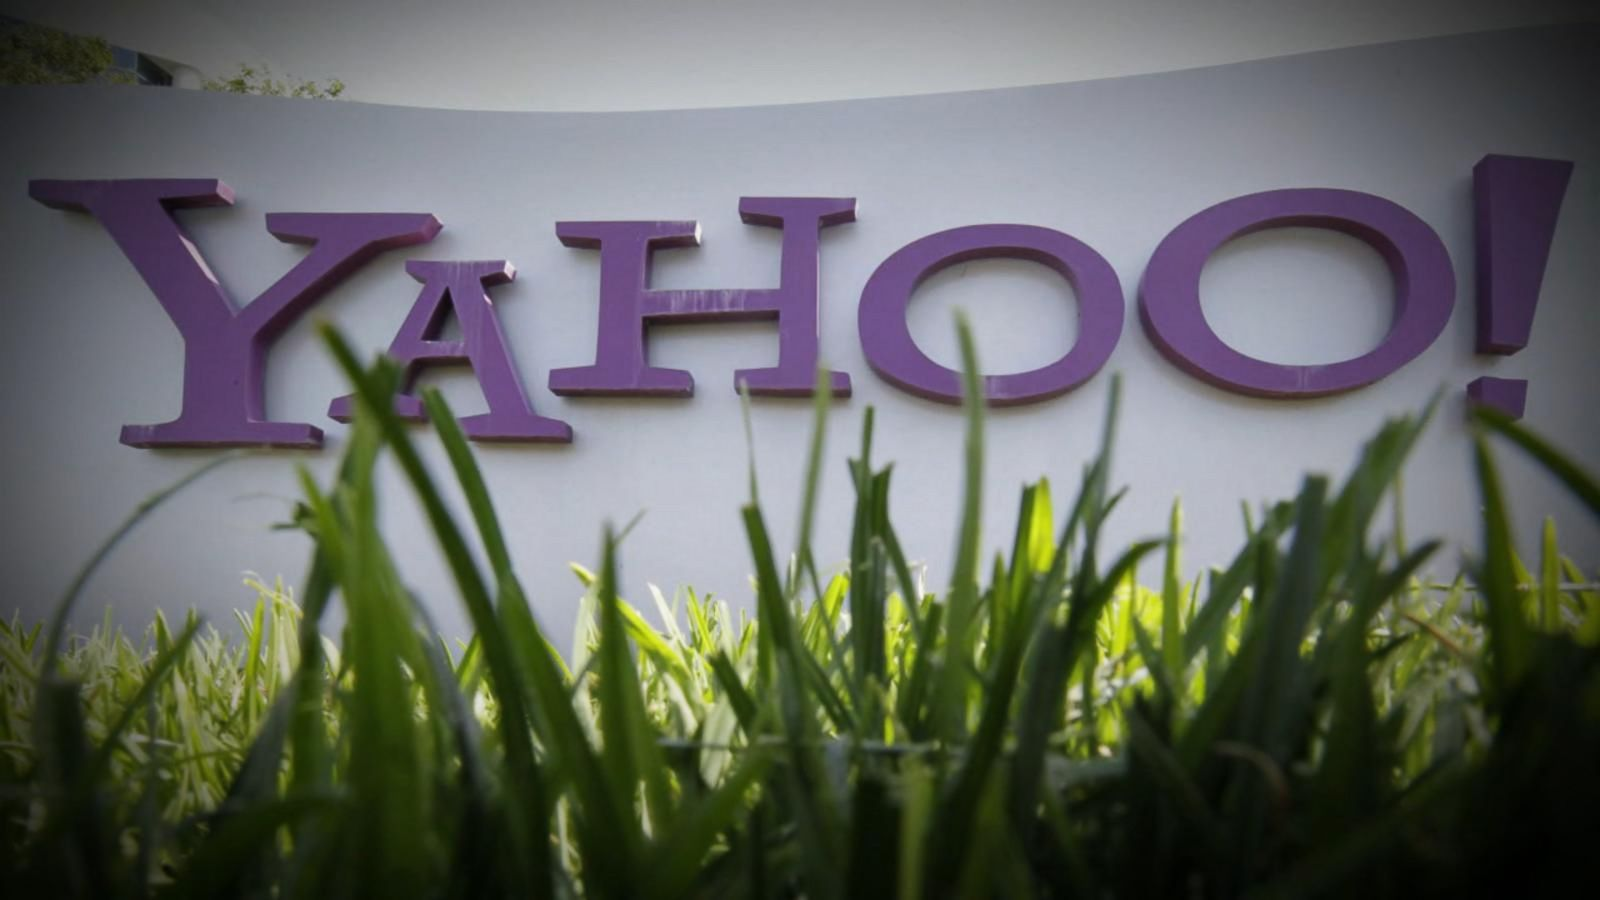 VIDEO: Massive Hack Attack at Yahoo